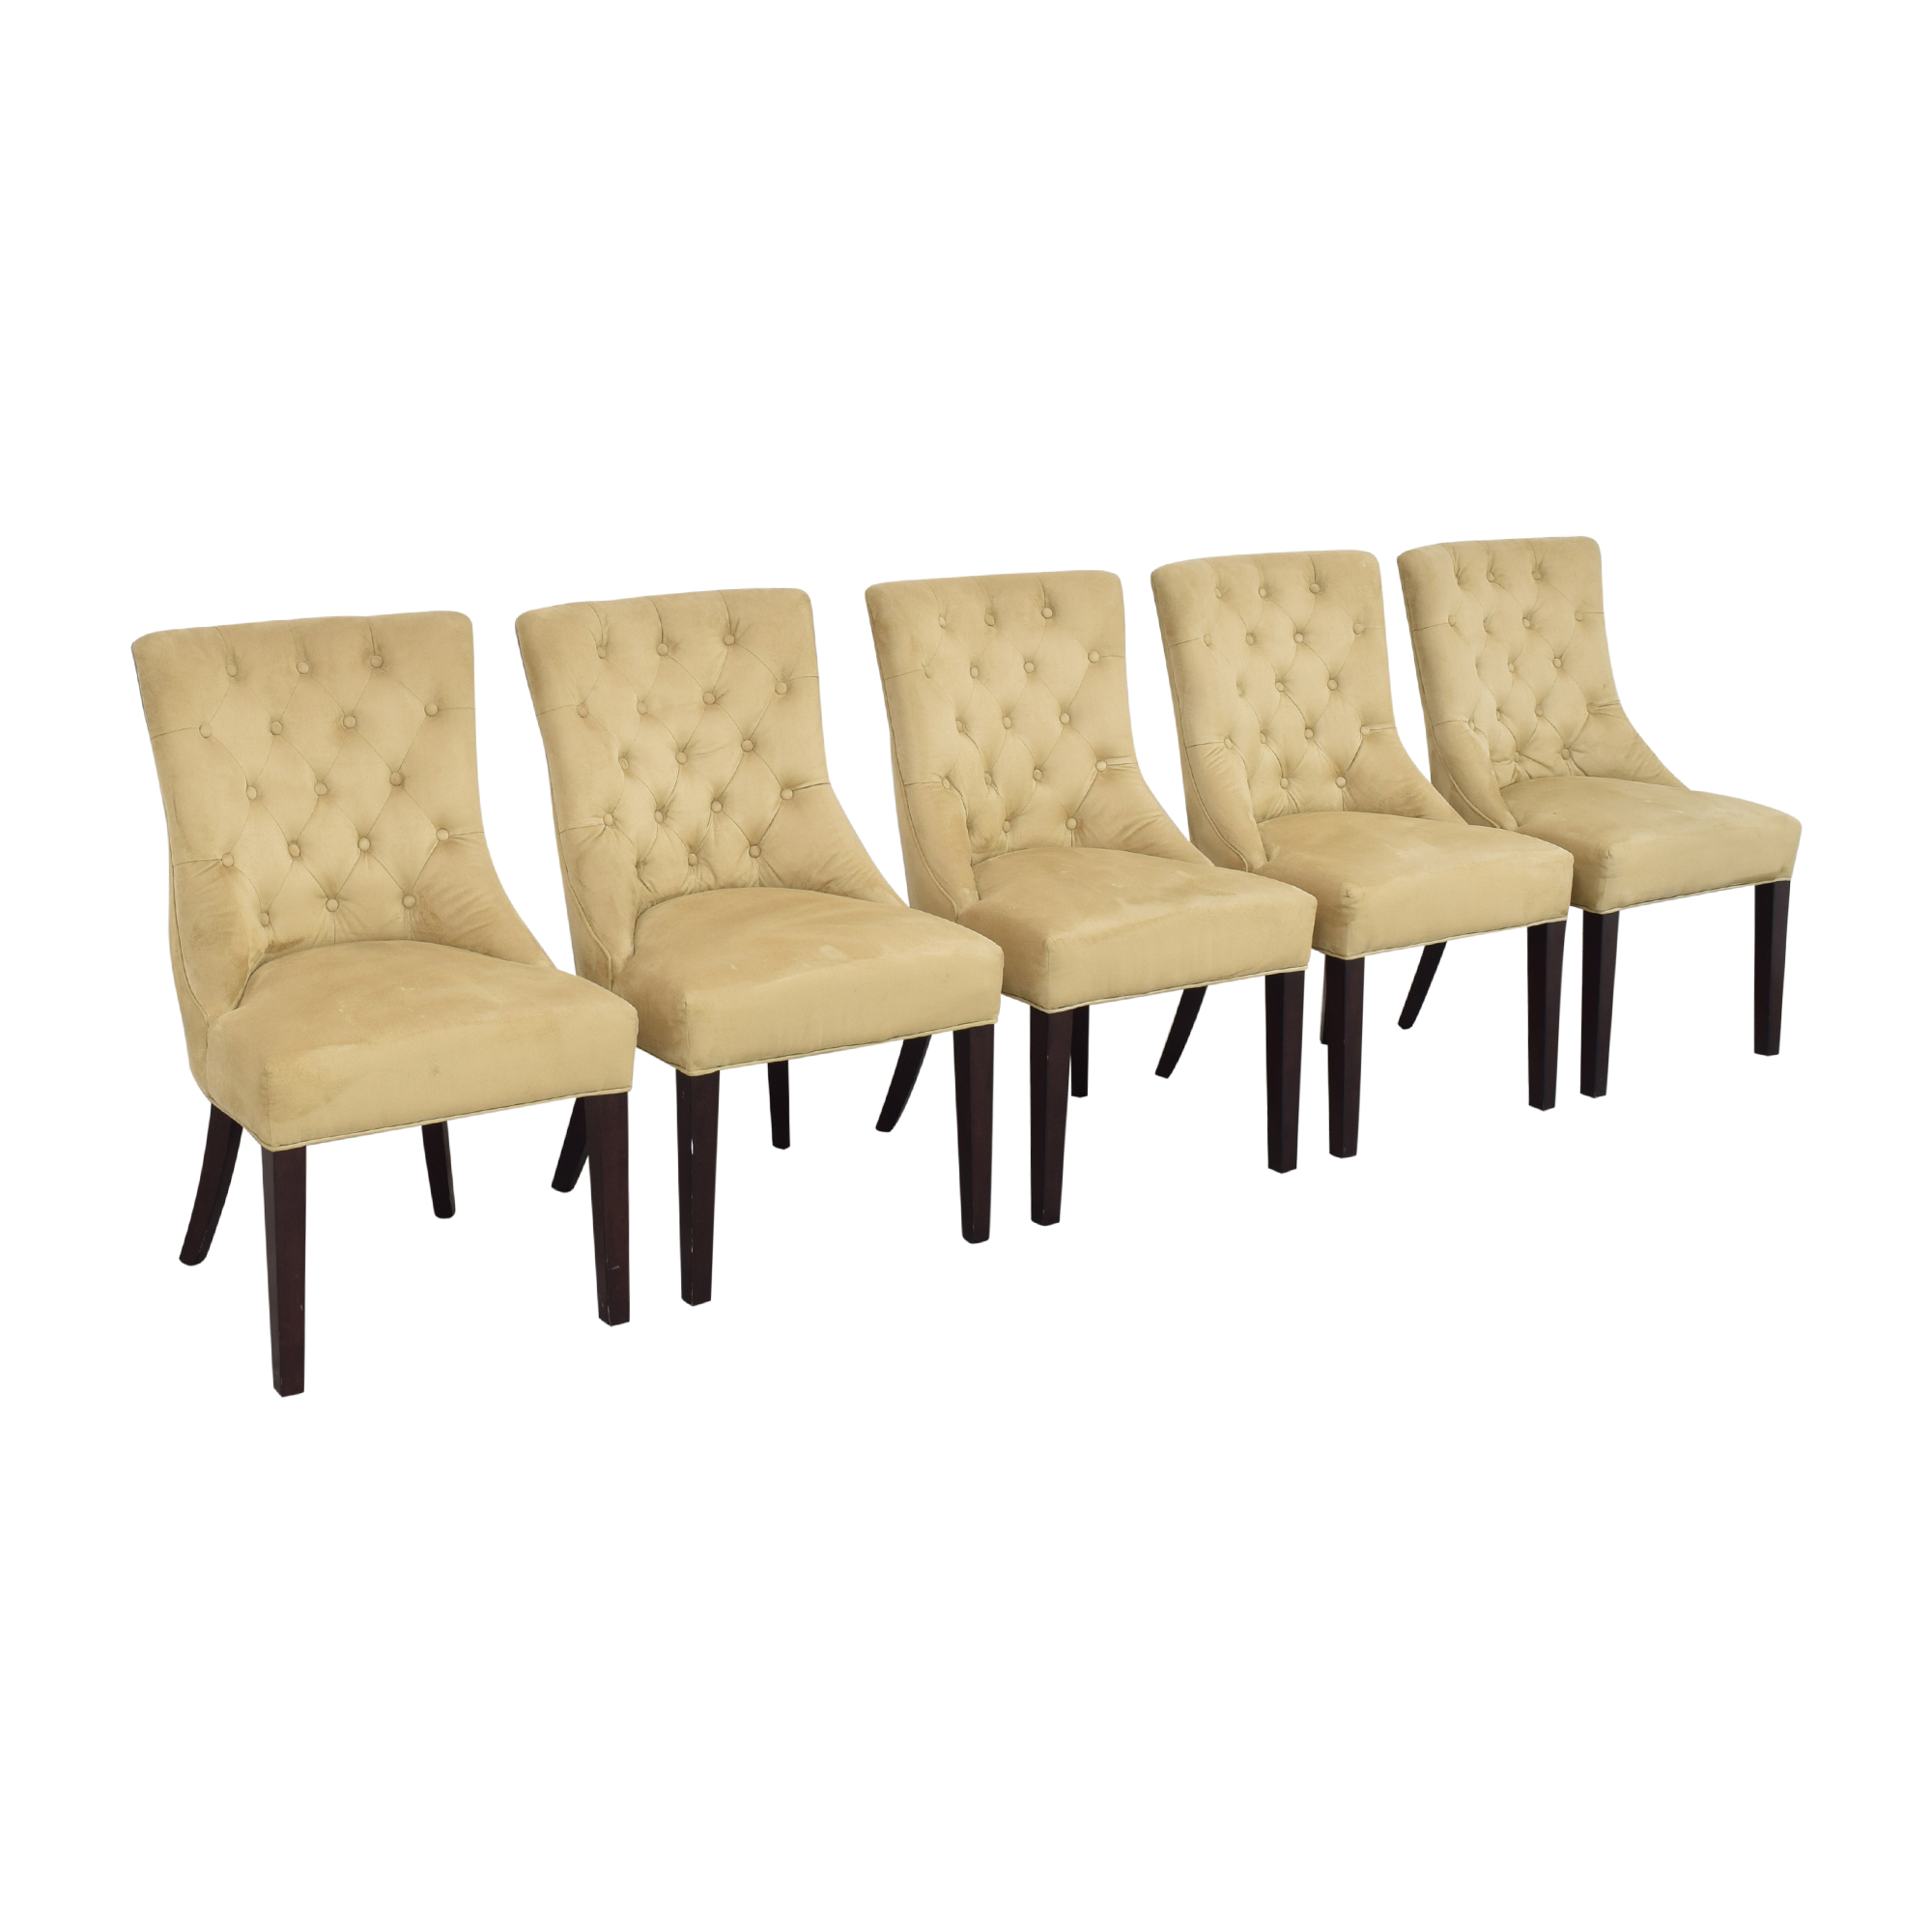 Pottery Barn Hayes Tufted Dining Chairs sale